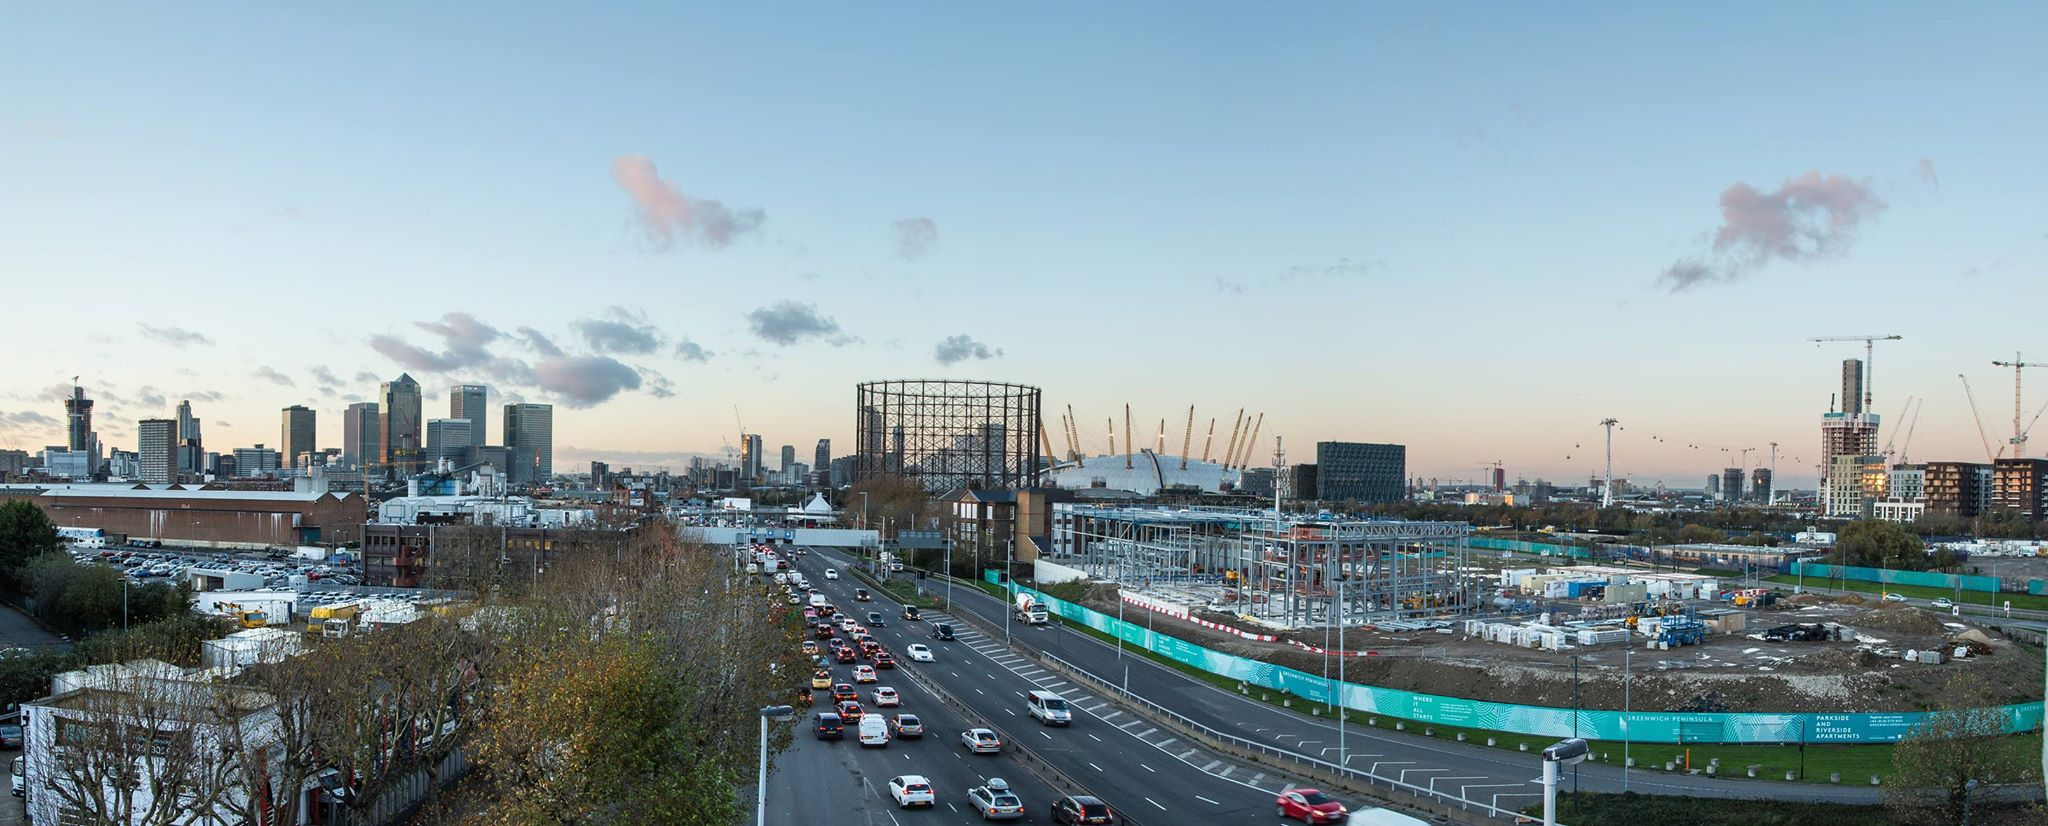 View from roof of Ibis Styles hotel (November 2015) [One Investments]